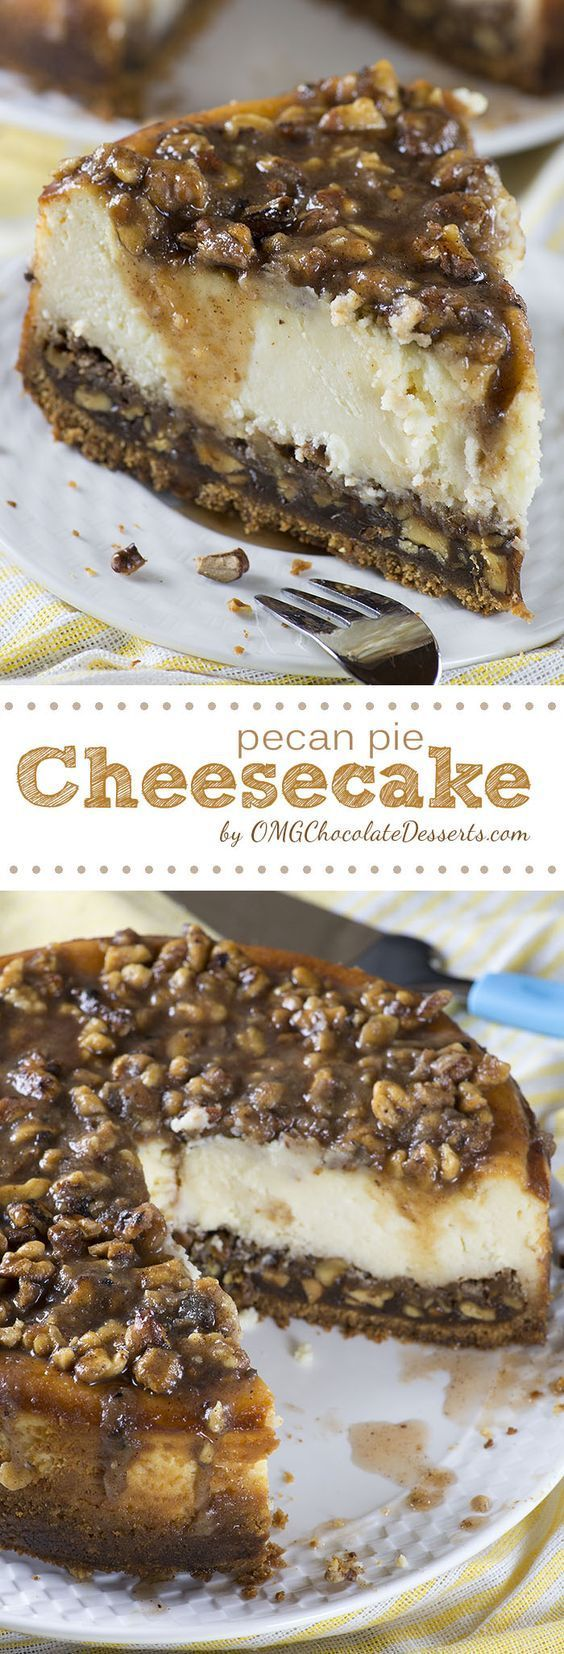 Searching for a perfect autumn dessert Pecan could be a great trick up your sleeve. If you combine them with the always decadent cheesecake your Pecan Pie Cheesecake could become the ideal Thanksgiving treat.